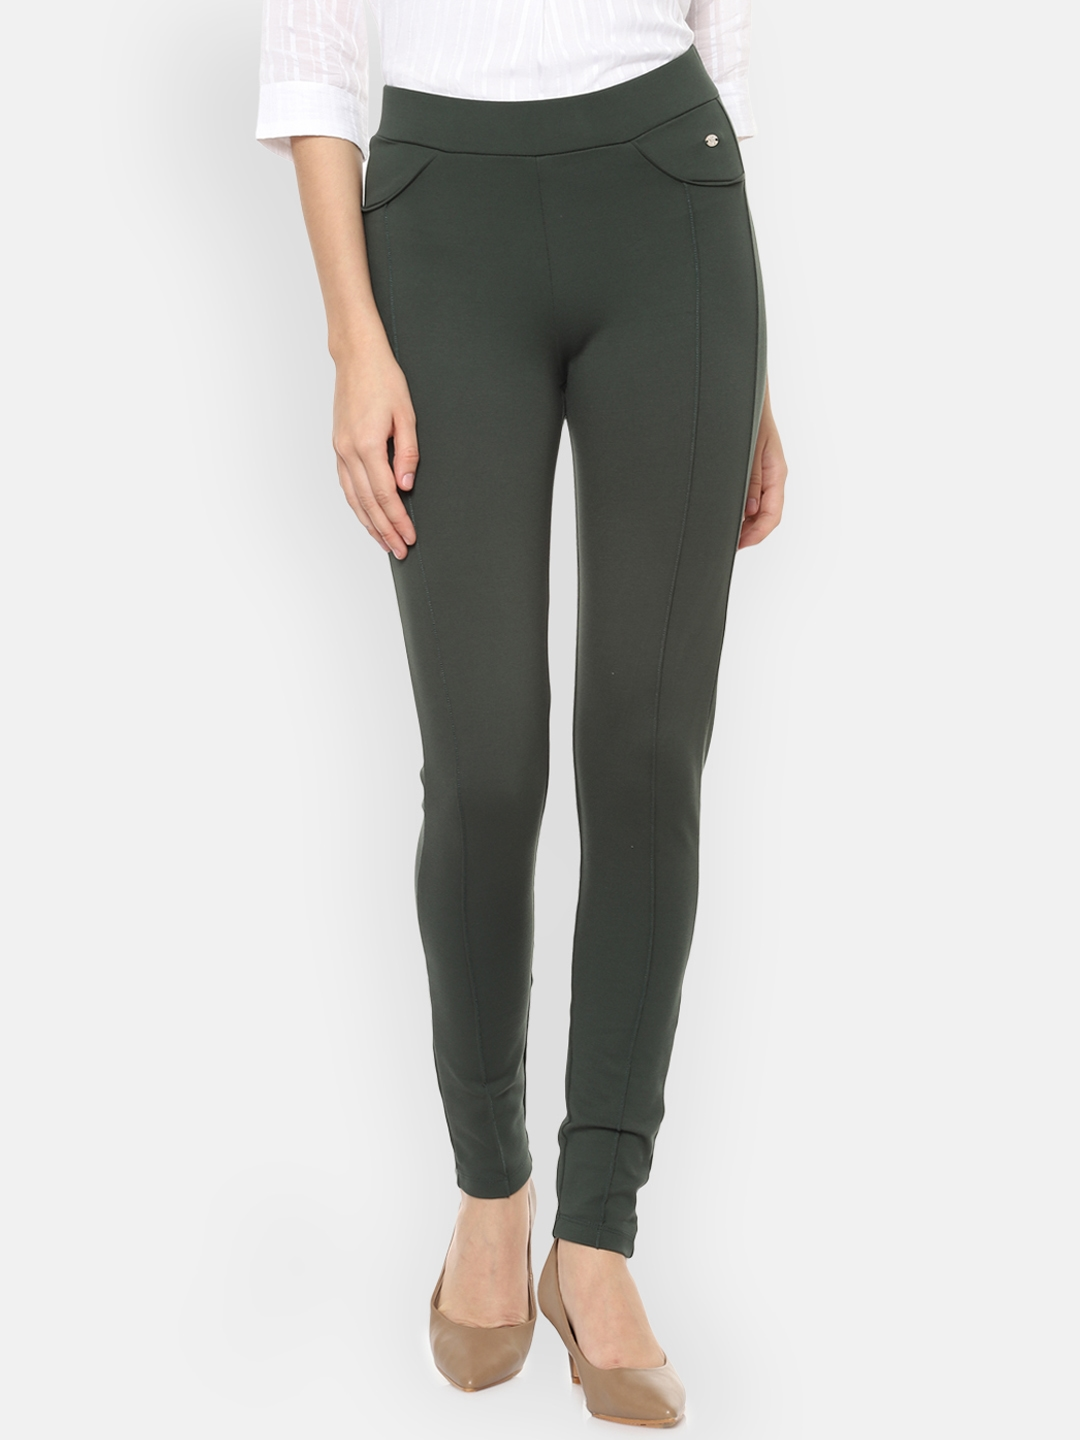 Allen Solly Woman Olive Green Regular Fit Solid Regular Trousers